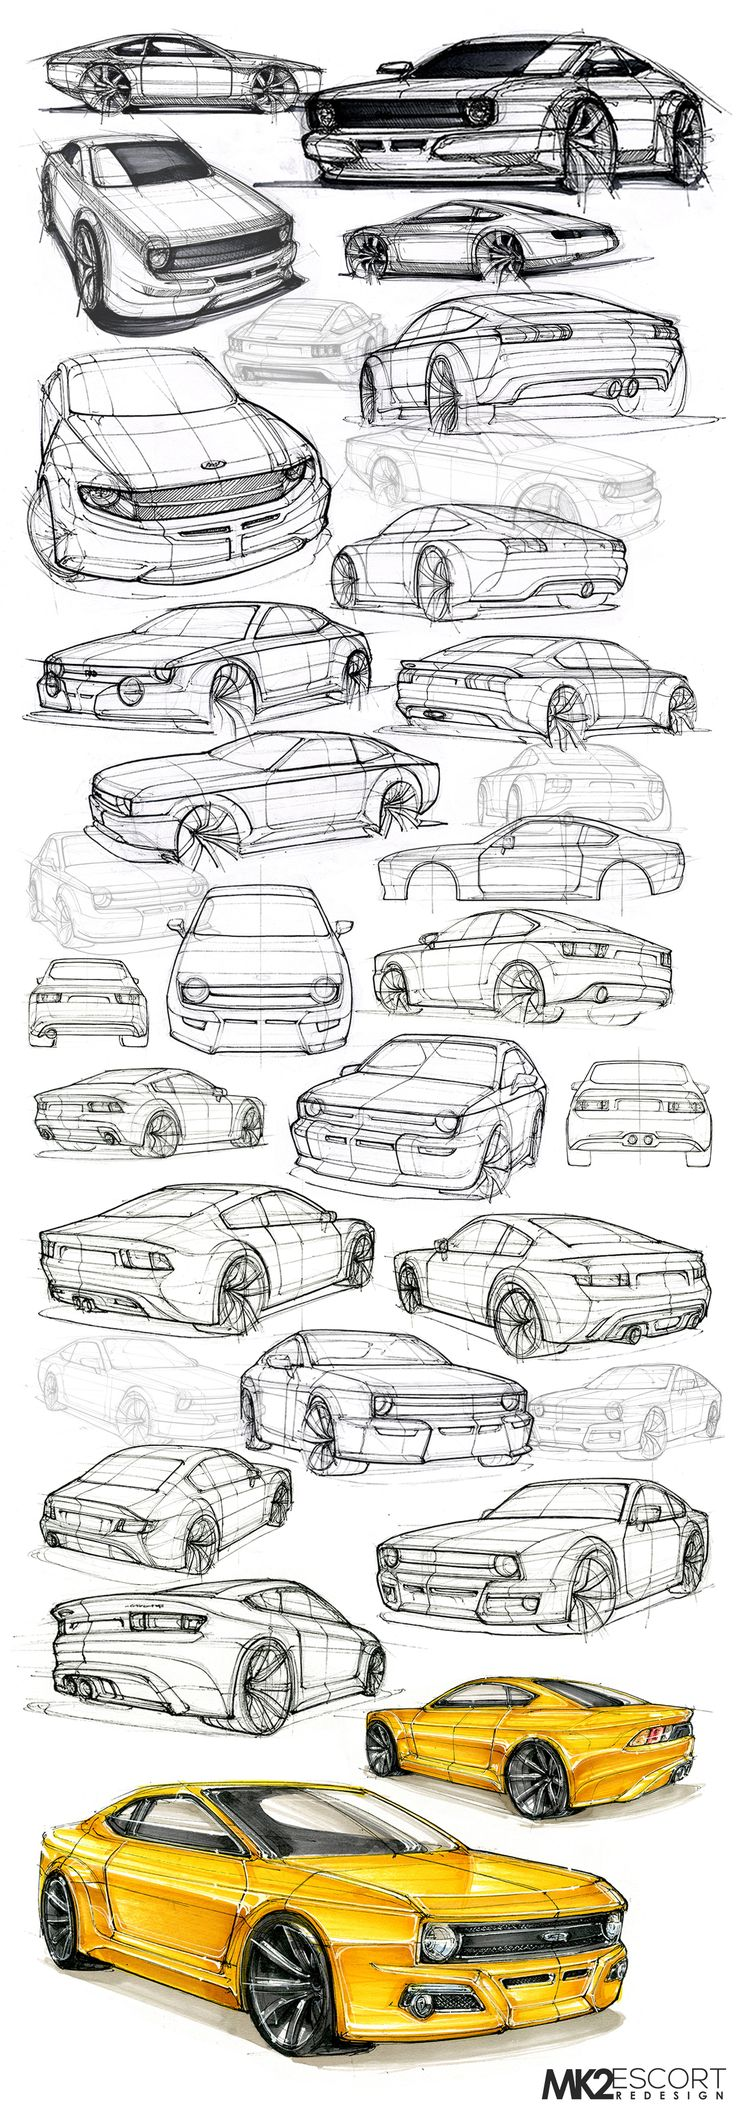 Mk2 Ford Escort Redesign Sketches